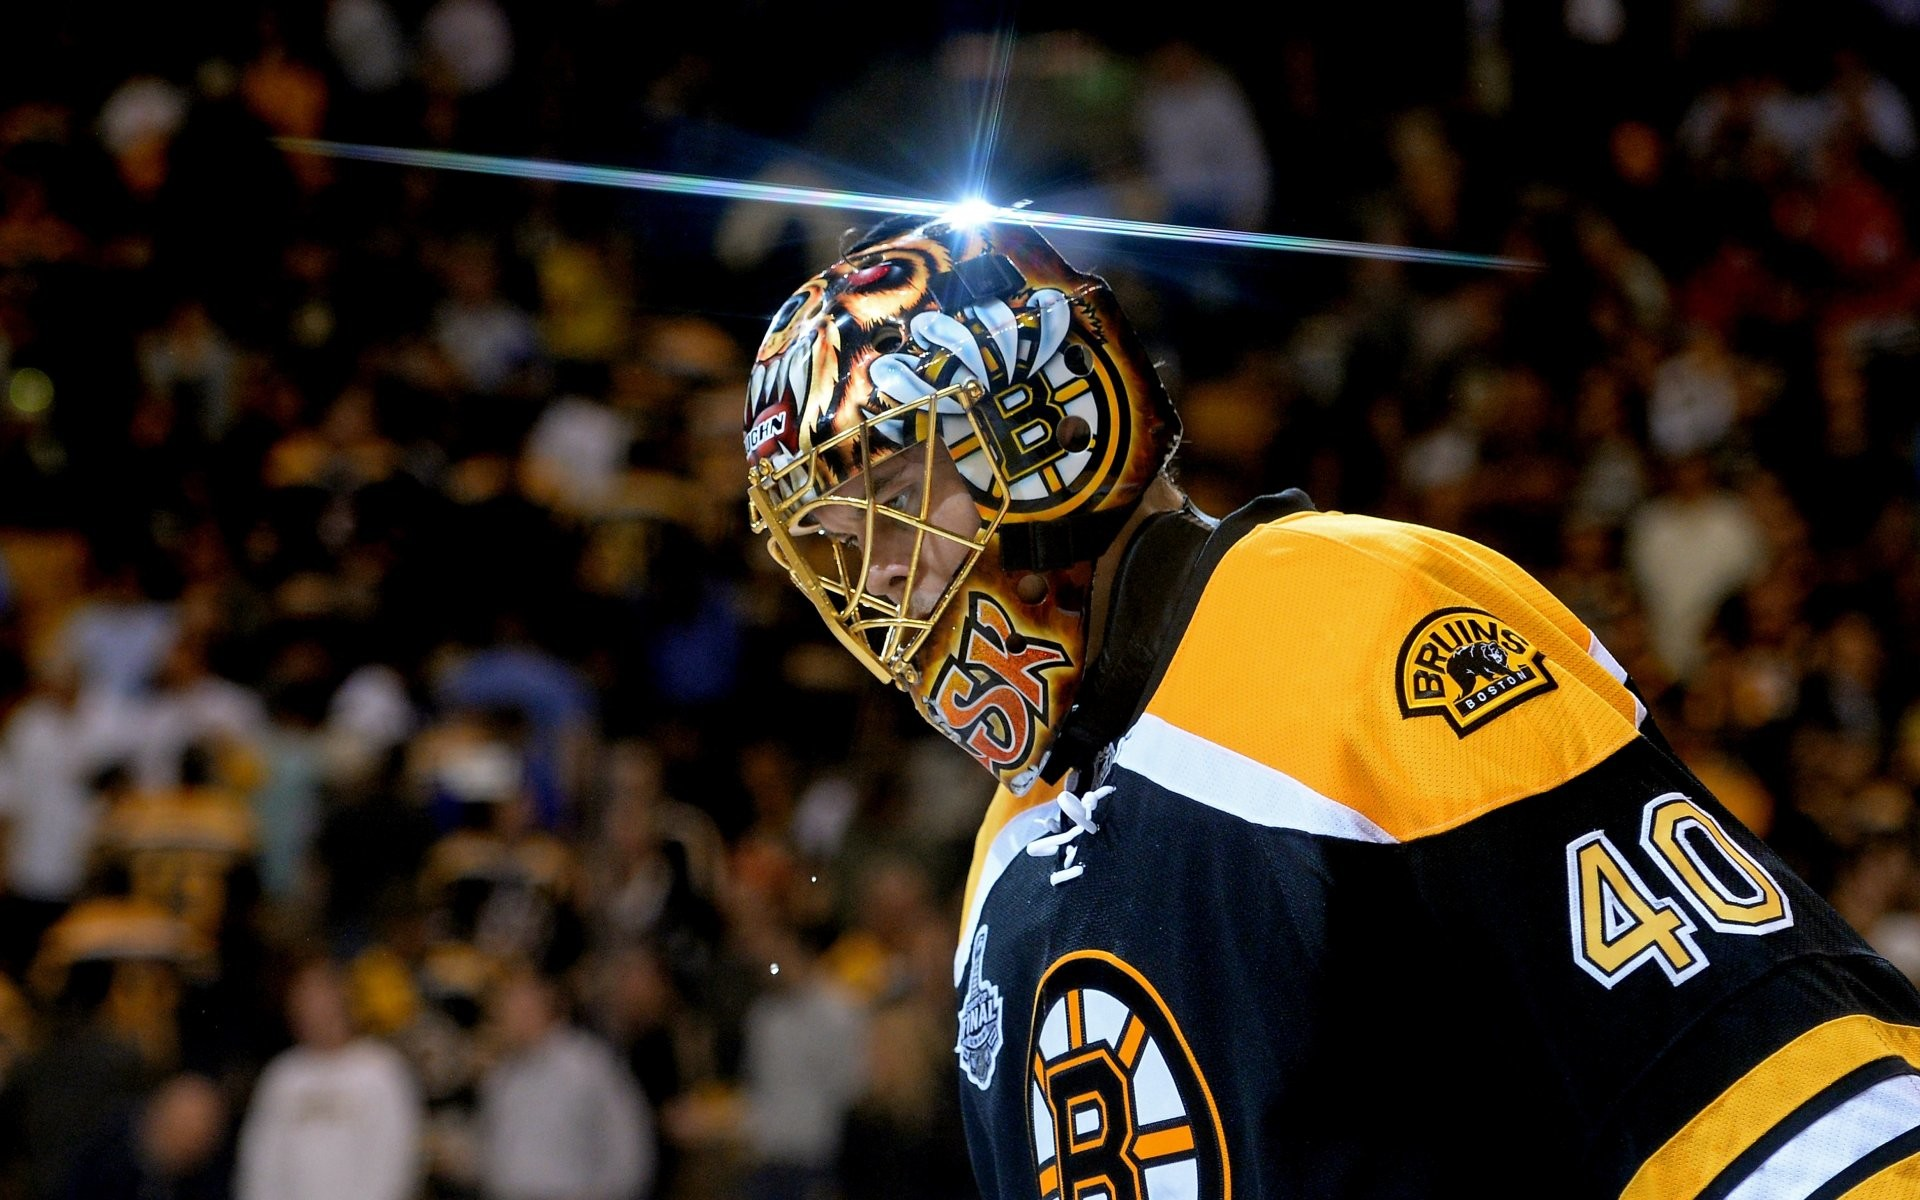 Sports News & Articles Scores, Pictures, Videos - ABC News Bruins game fan photos